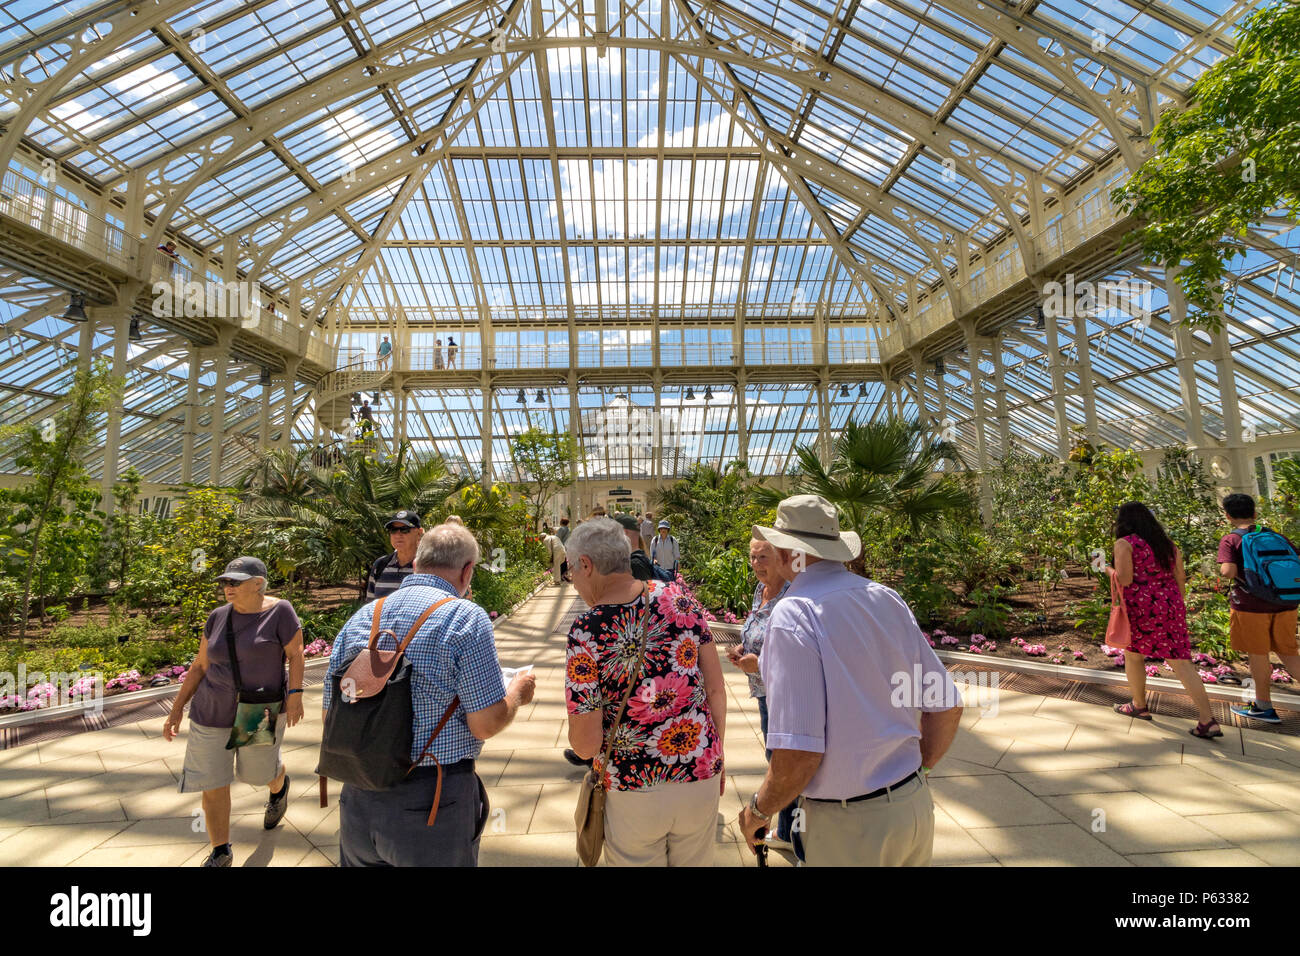 After a 5 year restoration, the newly restored Temperate House at The Royal Botanic Gardens, Kew in London has reopened to visitors . Stock Photo